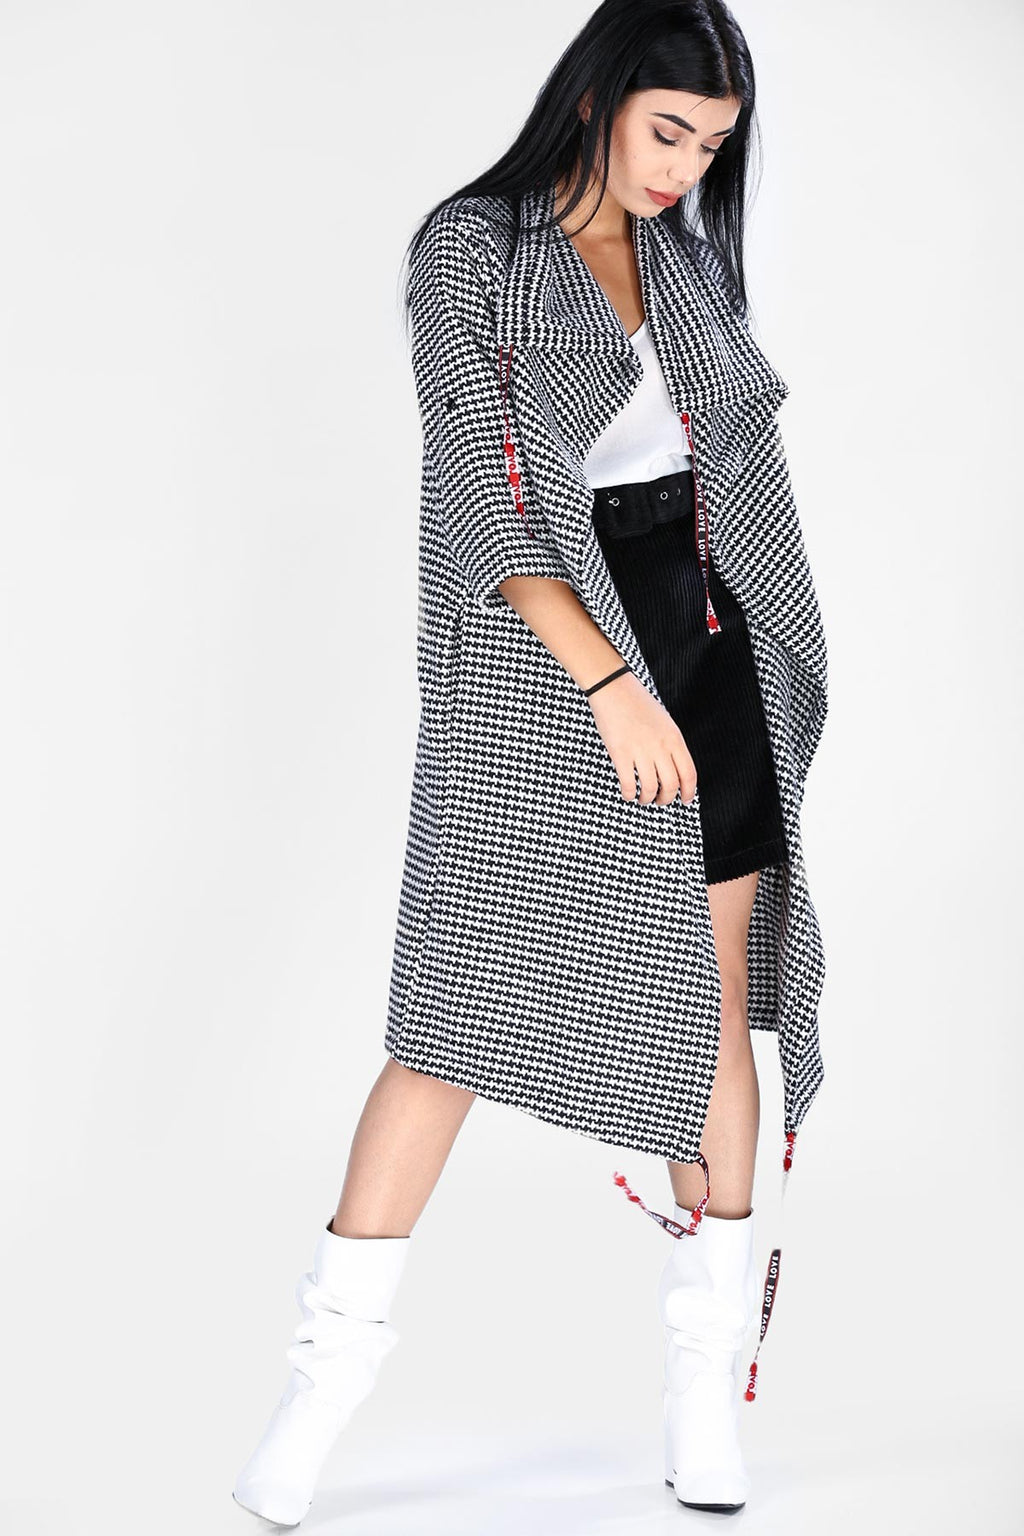 Women's Long Patterned Jacket(Contest)